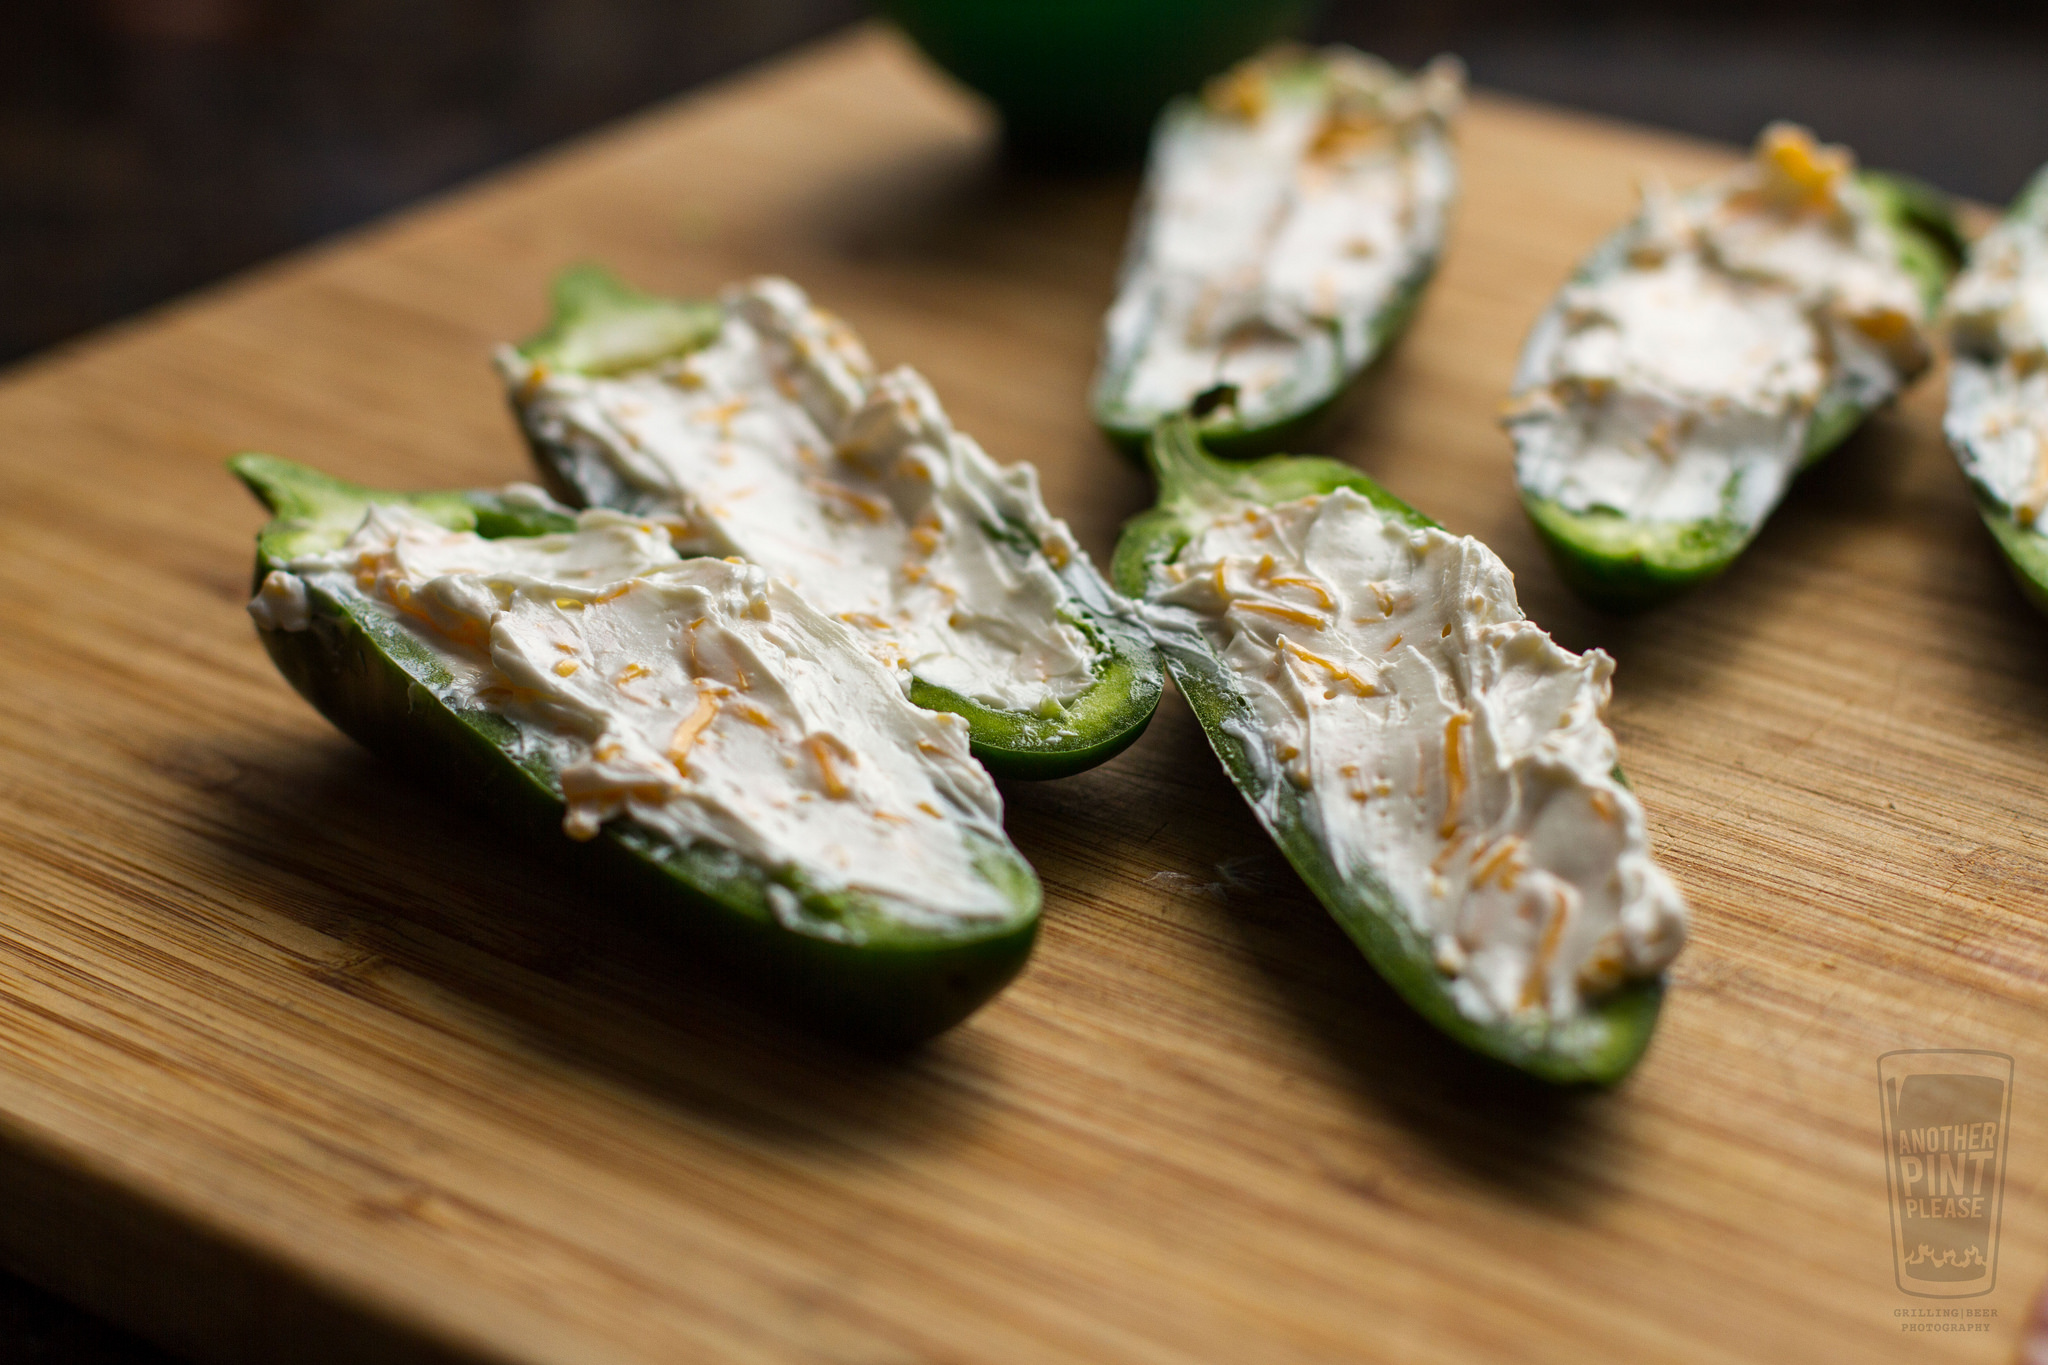 jalapenos filled with cream cheese.jpghttps://www.flickr.com/photos/anotherpintplease/28540130891